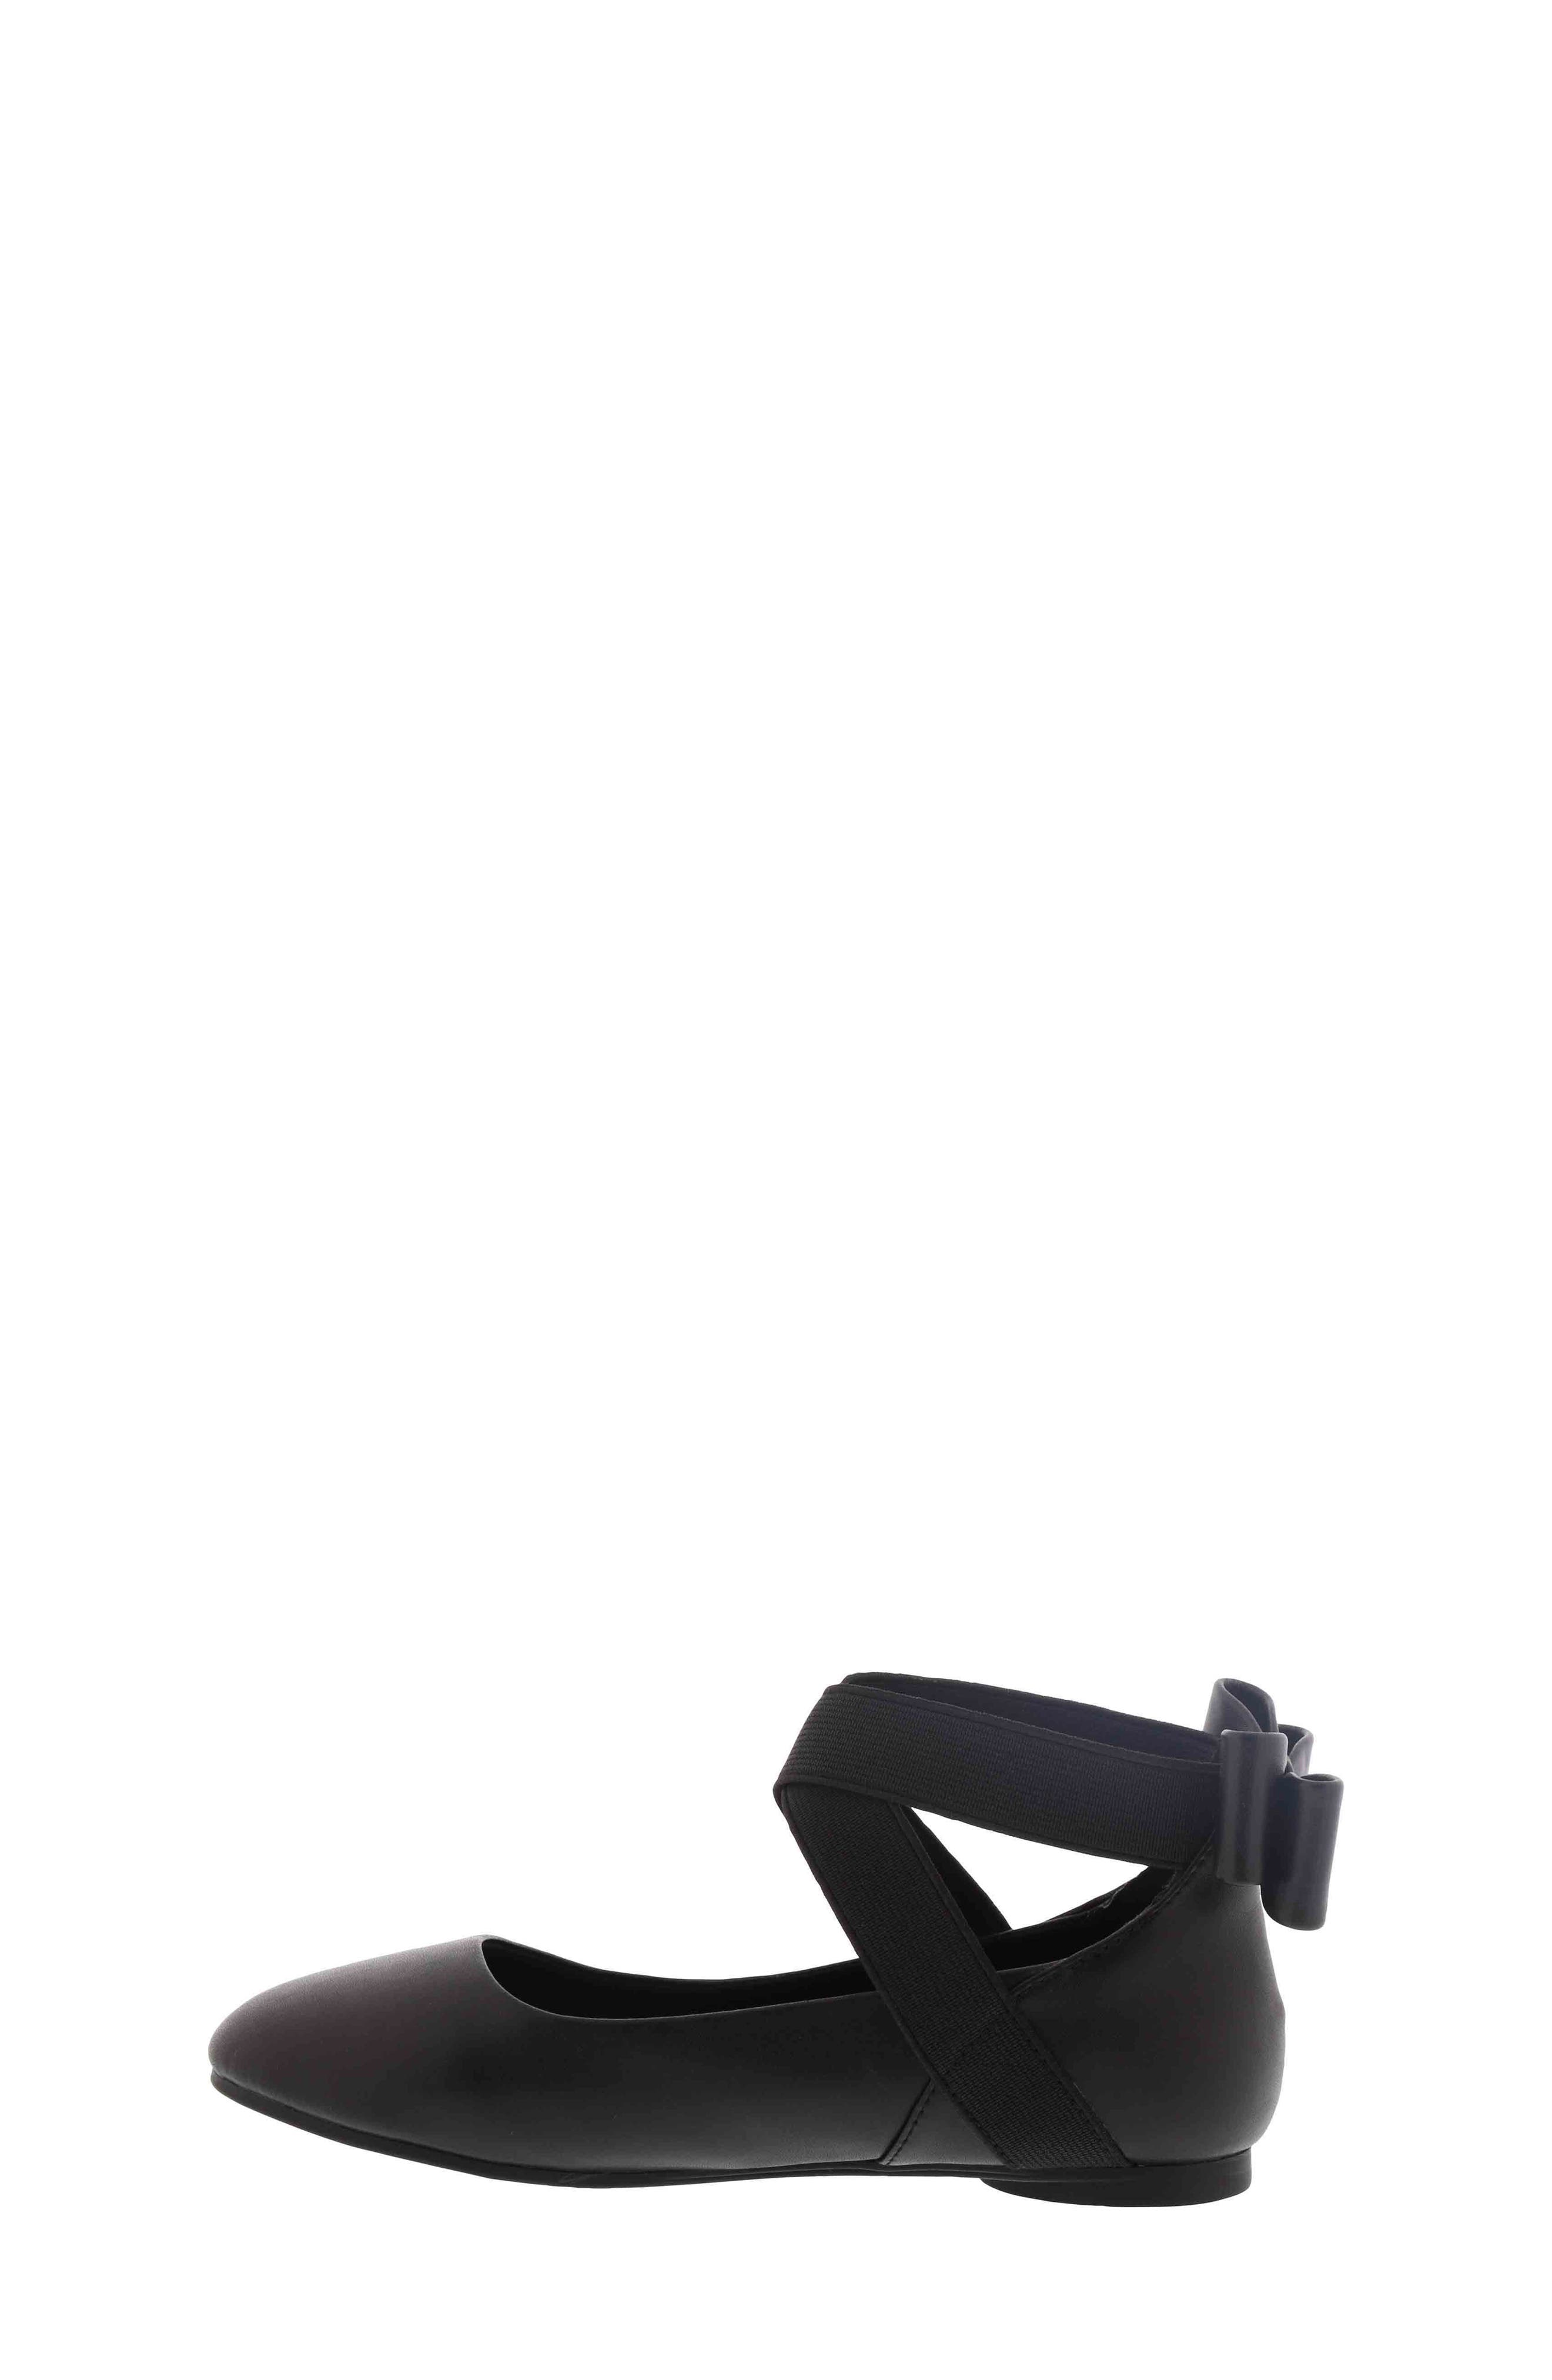 KENNETH COLE NEW YORK, Strappy Ballet Flat, Alternate thumbnail 3, color, 001